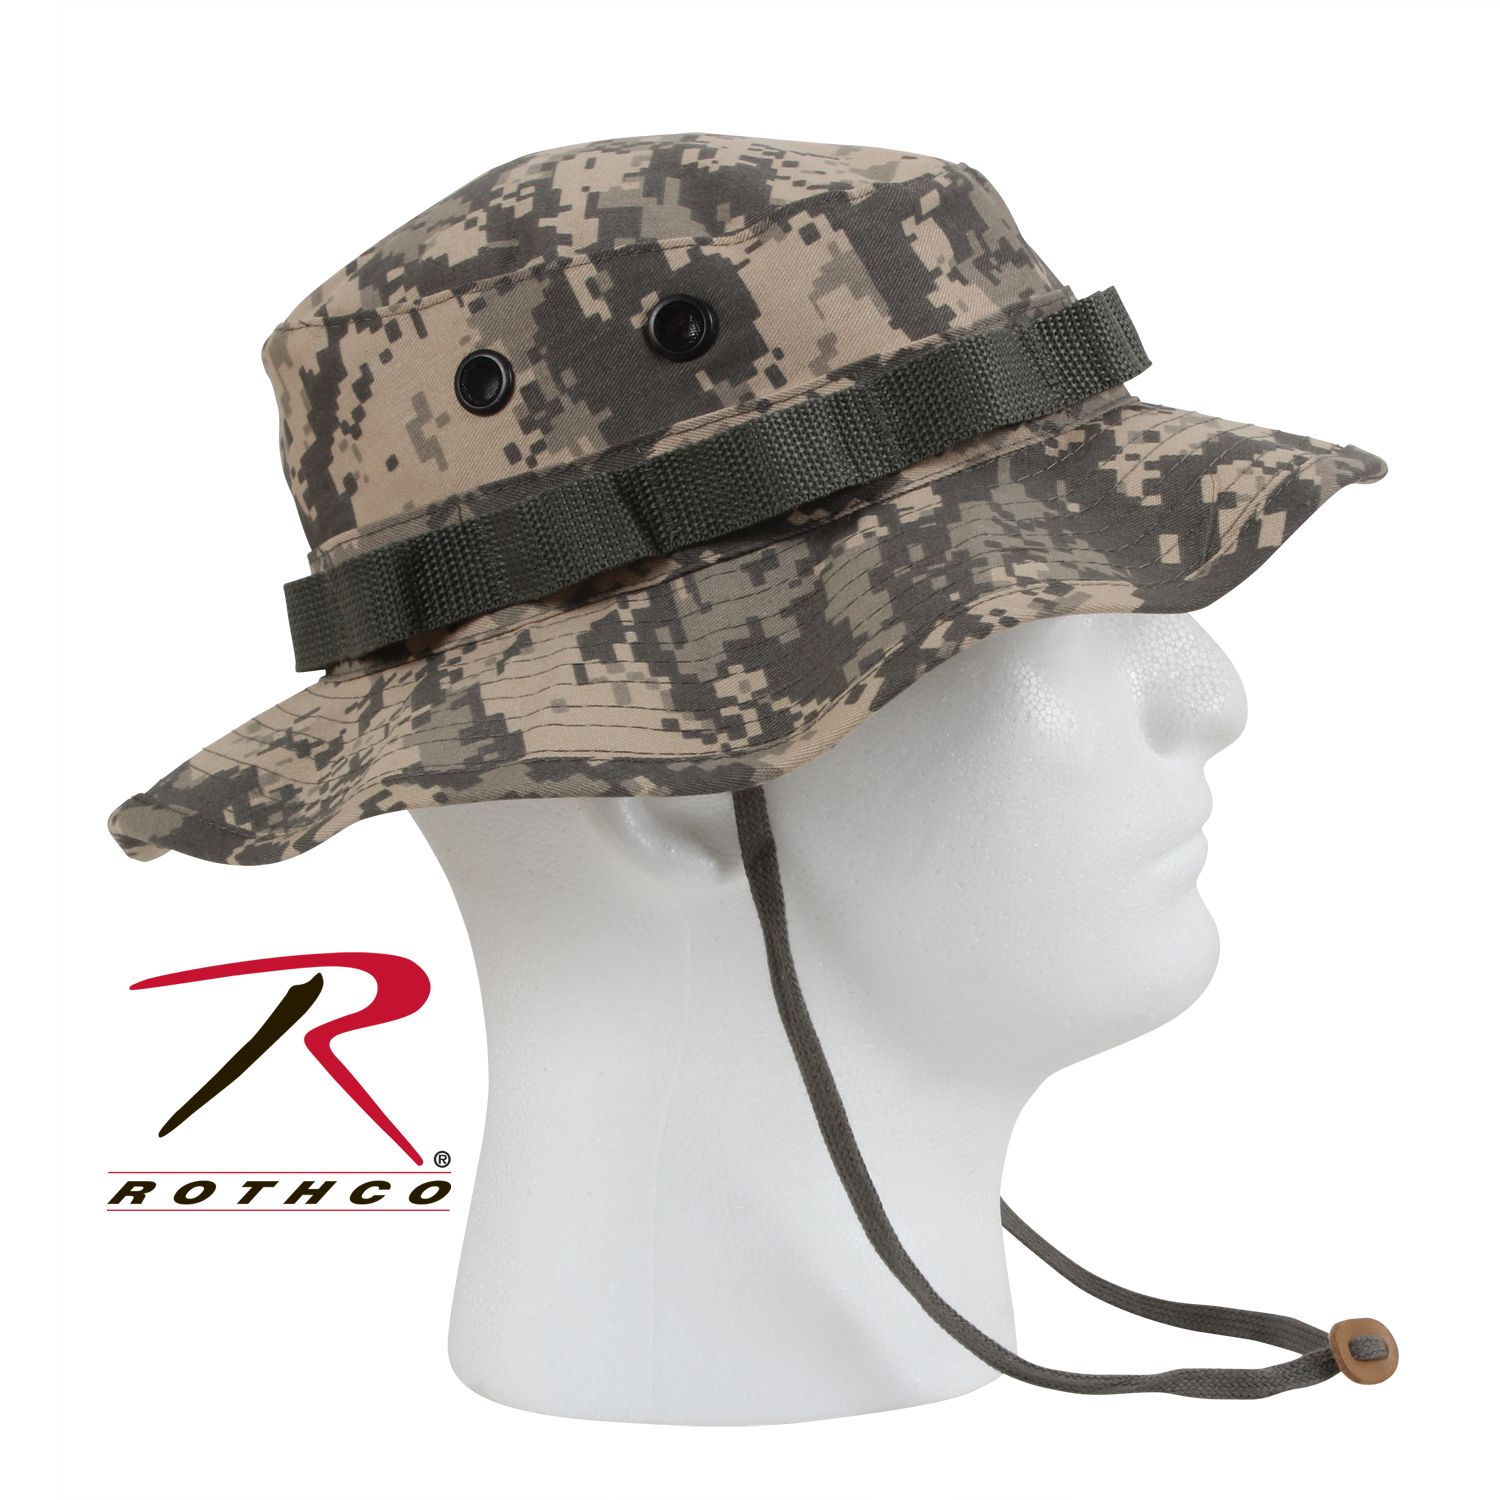 da3843791a1 Buy Rothco Digital Camo Boonie Hat - Rothco Online at Best price - PA